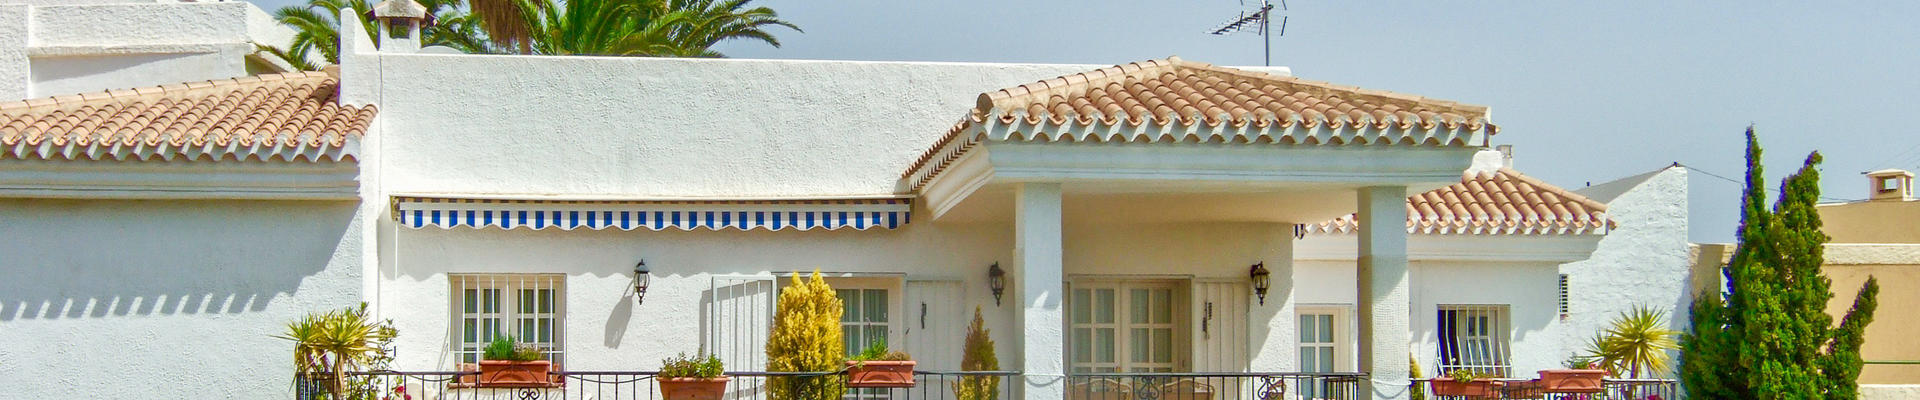 DV1456: 4 Bedroom Villa for Sale